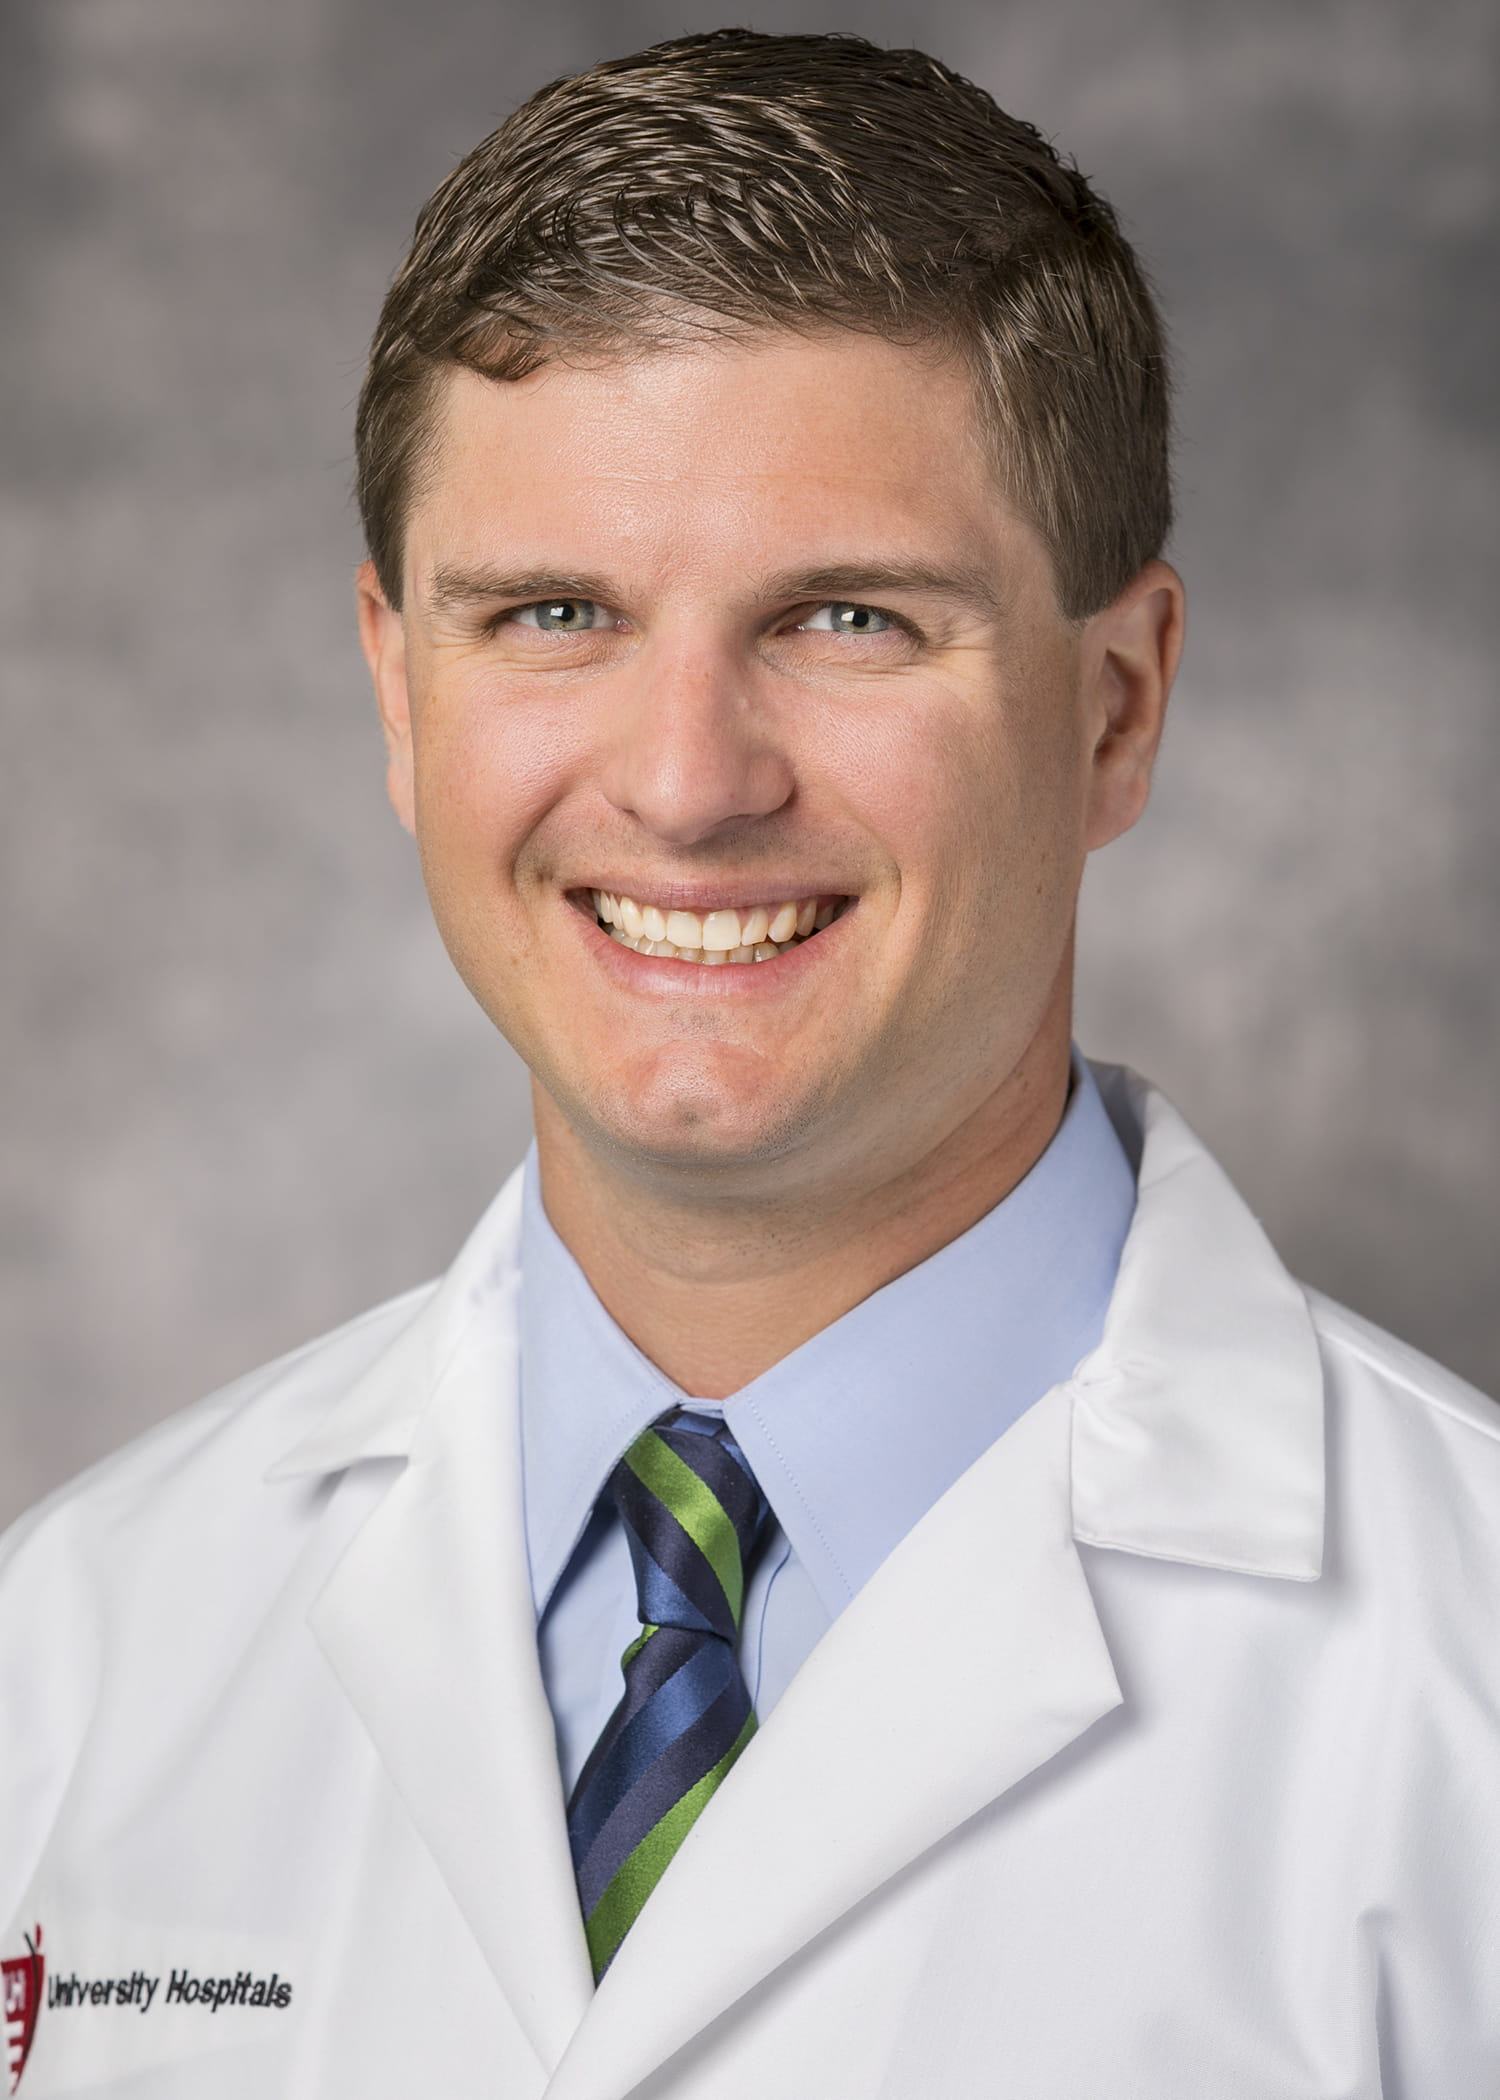 Michael Karns, MD